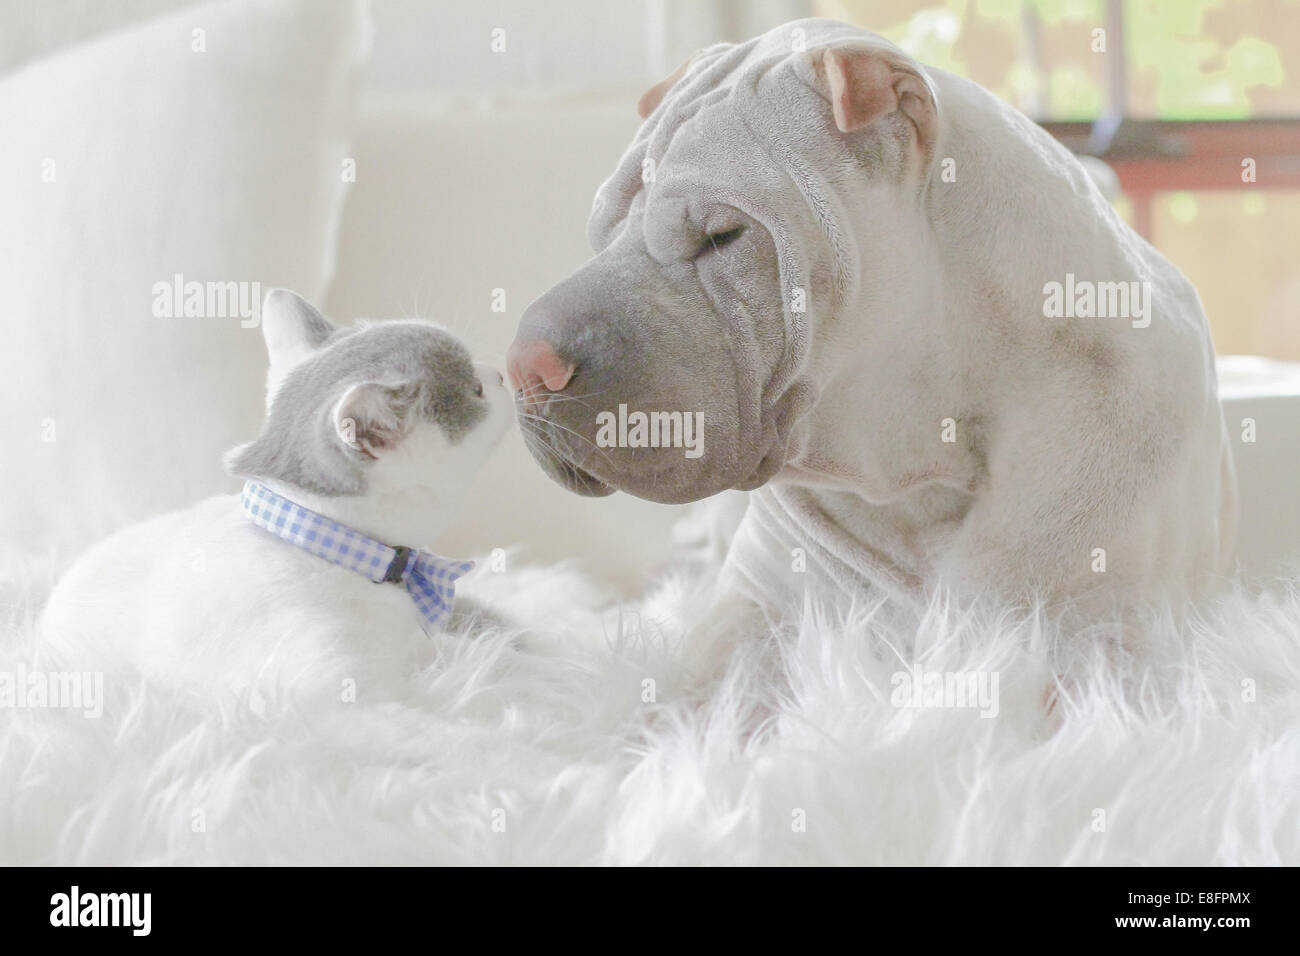 Shar-pei and kitten face to face - Stock Image